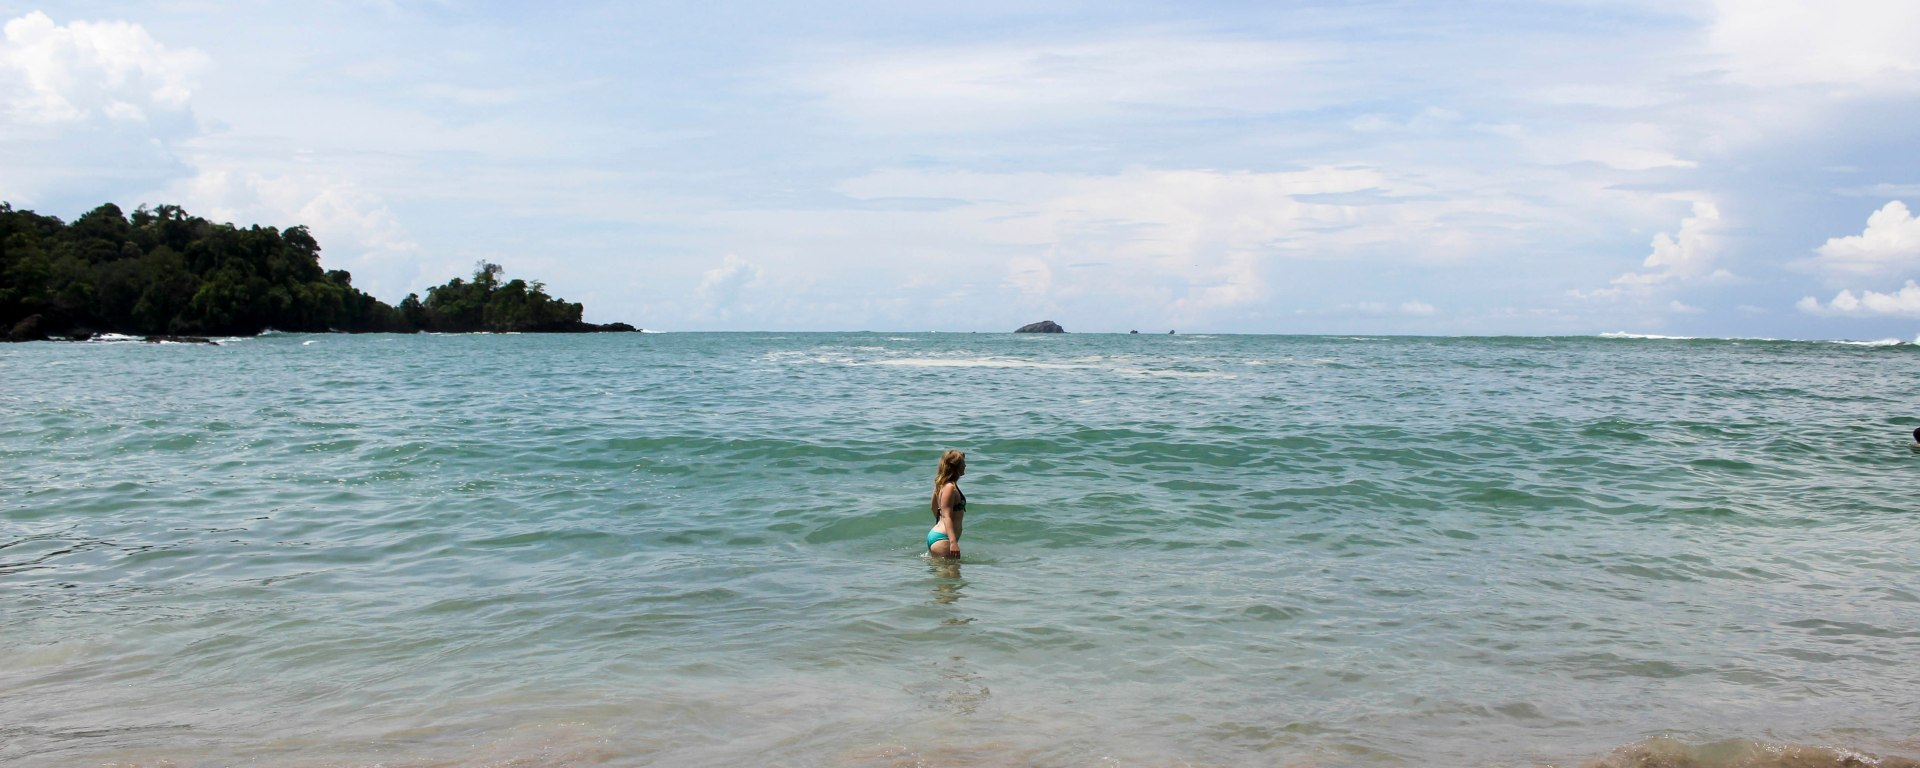 Nicola in the sea at the beach in Manuel Antonio National Park